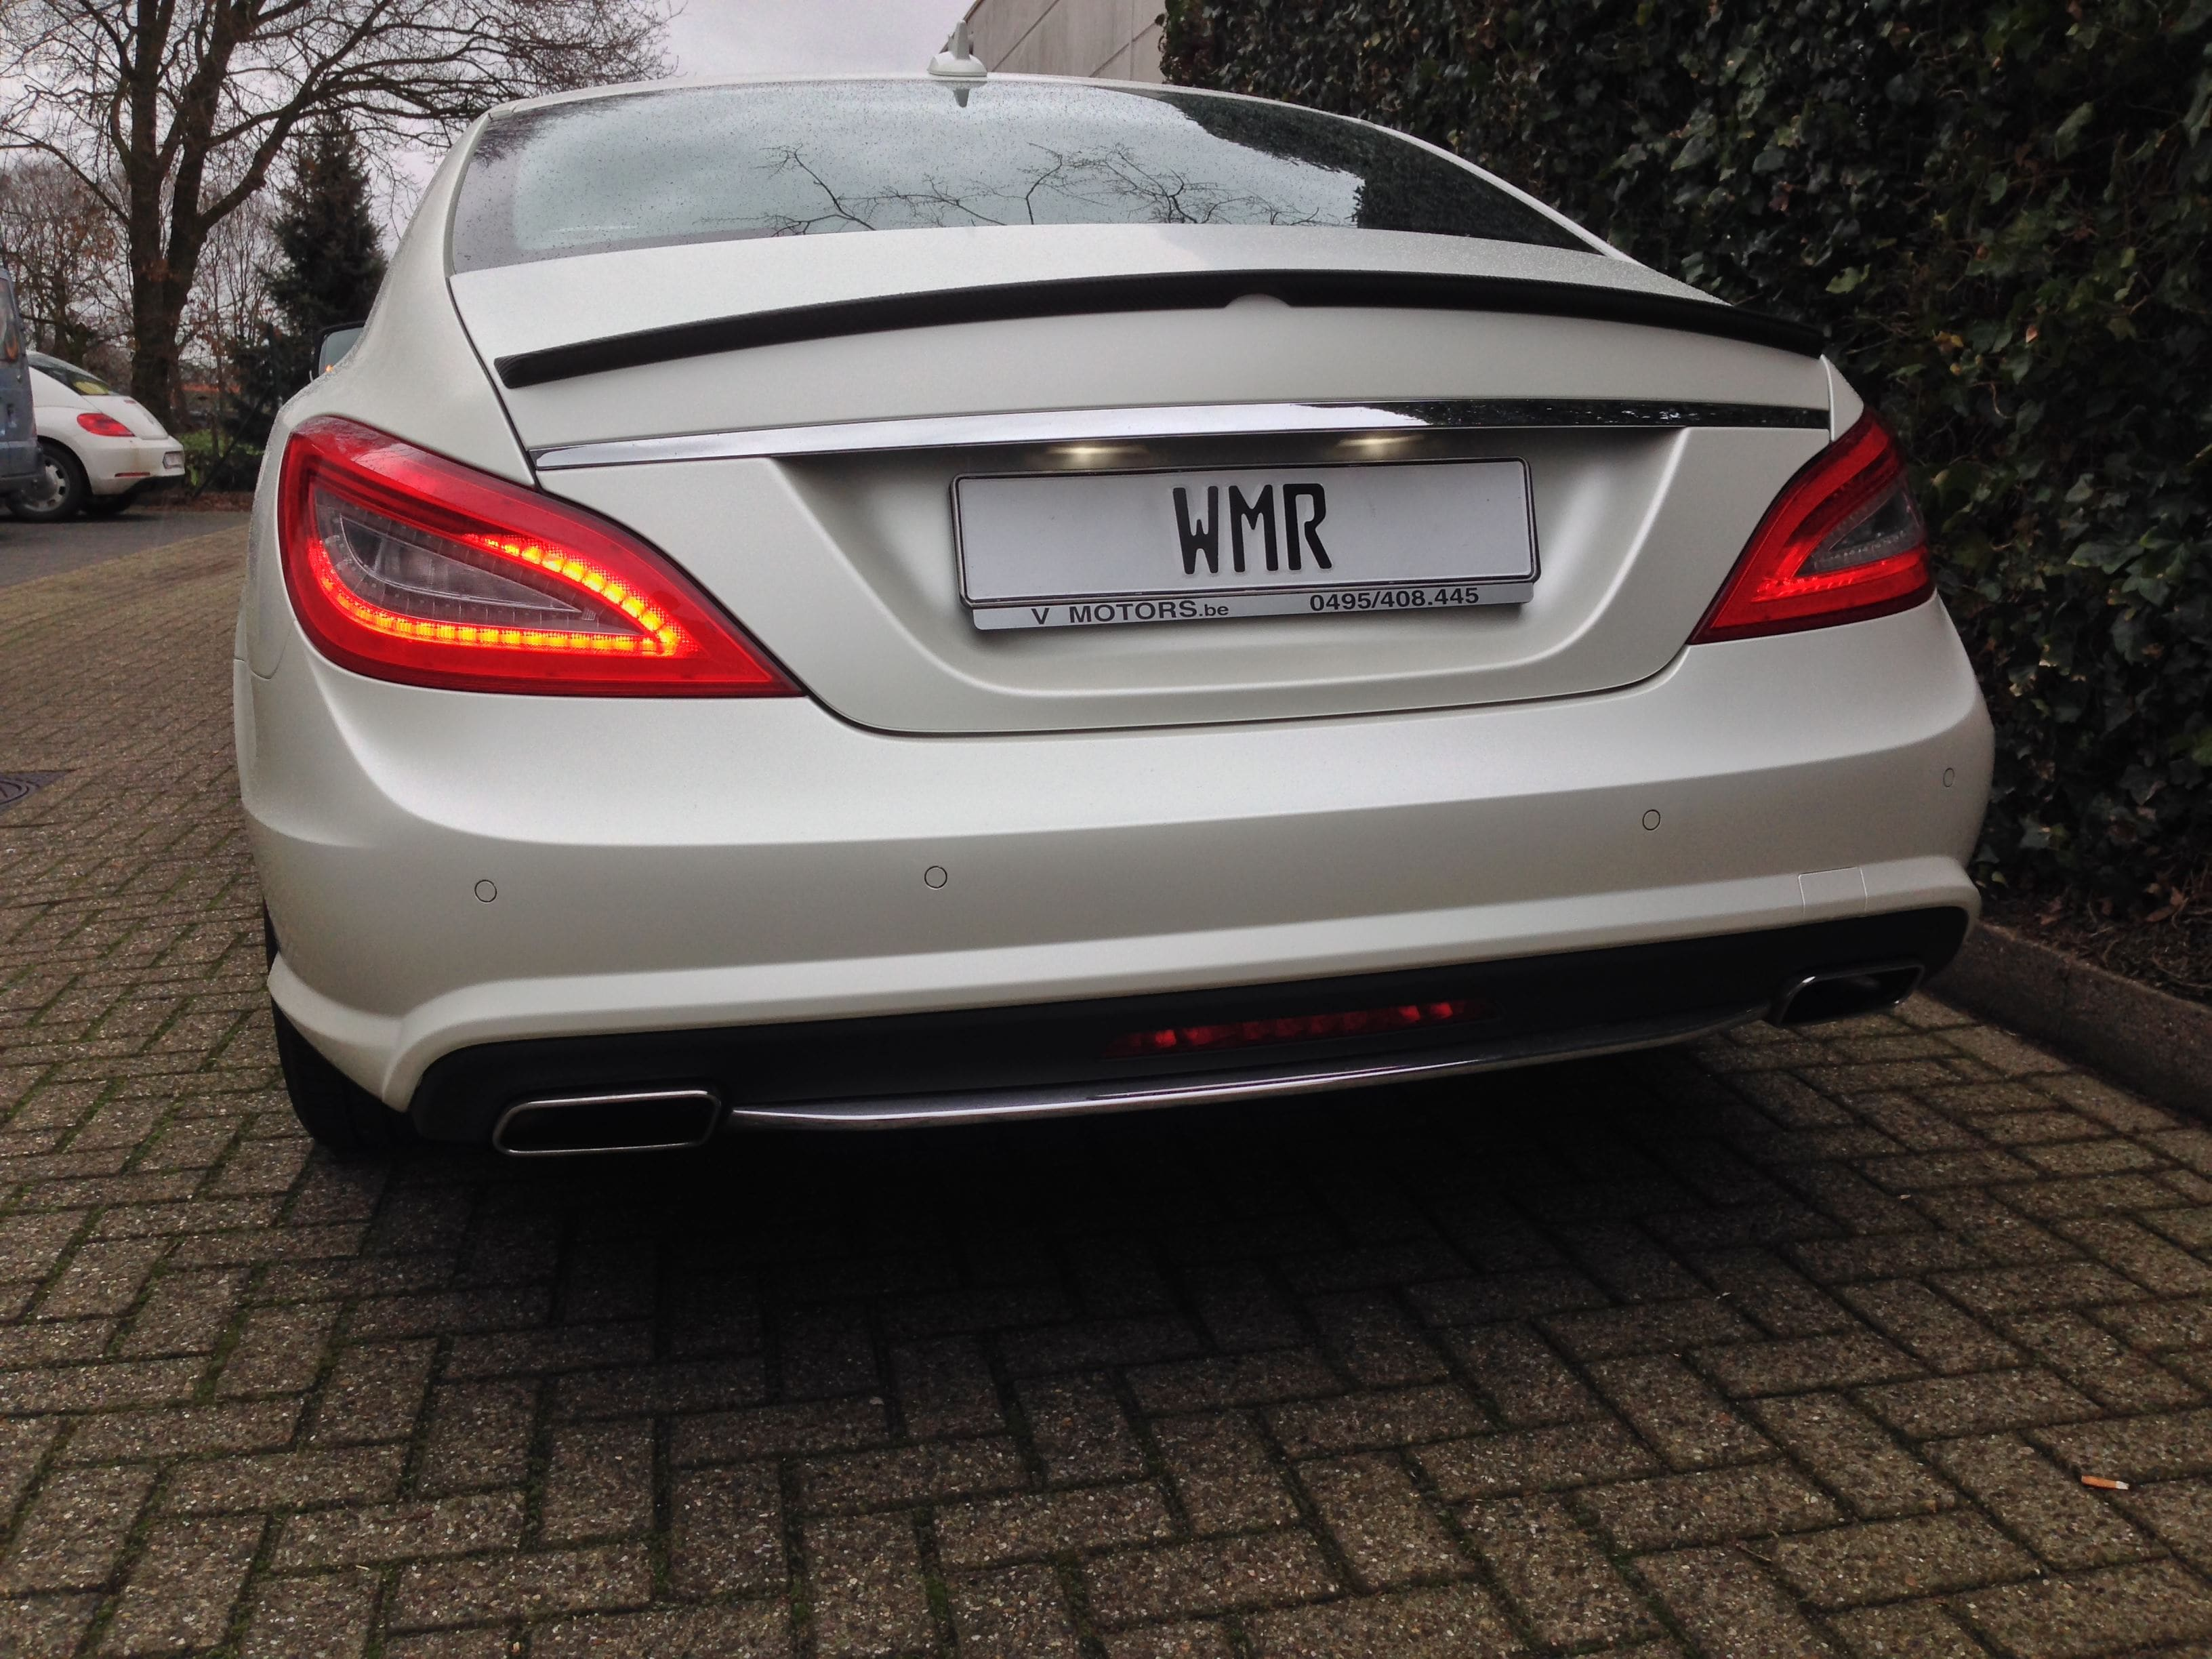 Mercedes CLS met White Satin Pearl Wrap, Carwrapping door Wrapmyride.nu Foto-nr:6212, ©2020